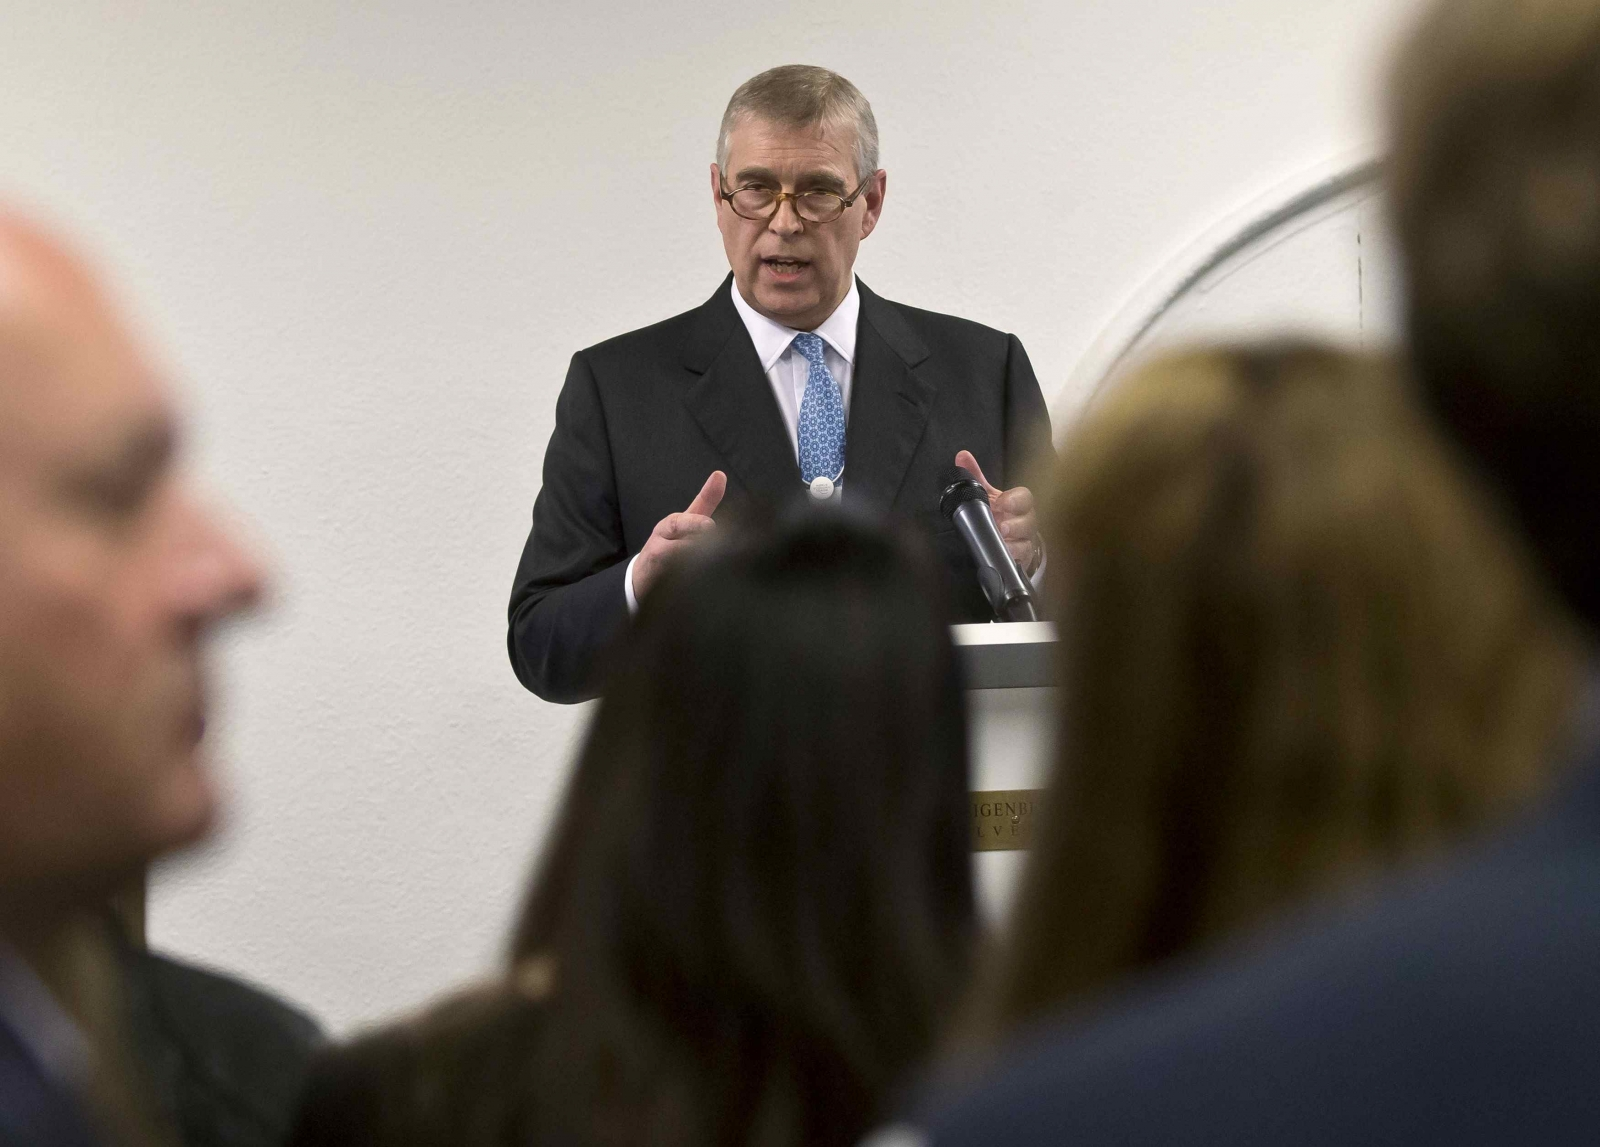 Prince Andrew publicly denies allegations of underage sex